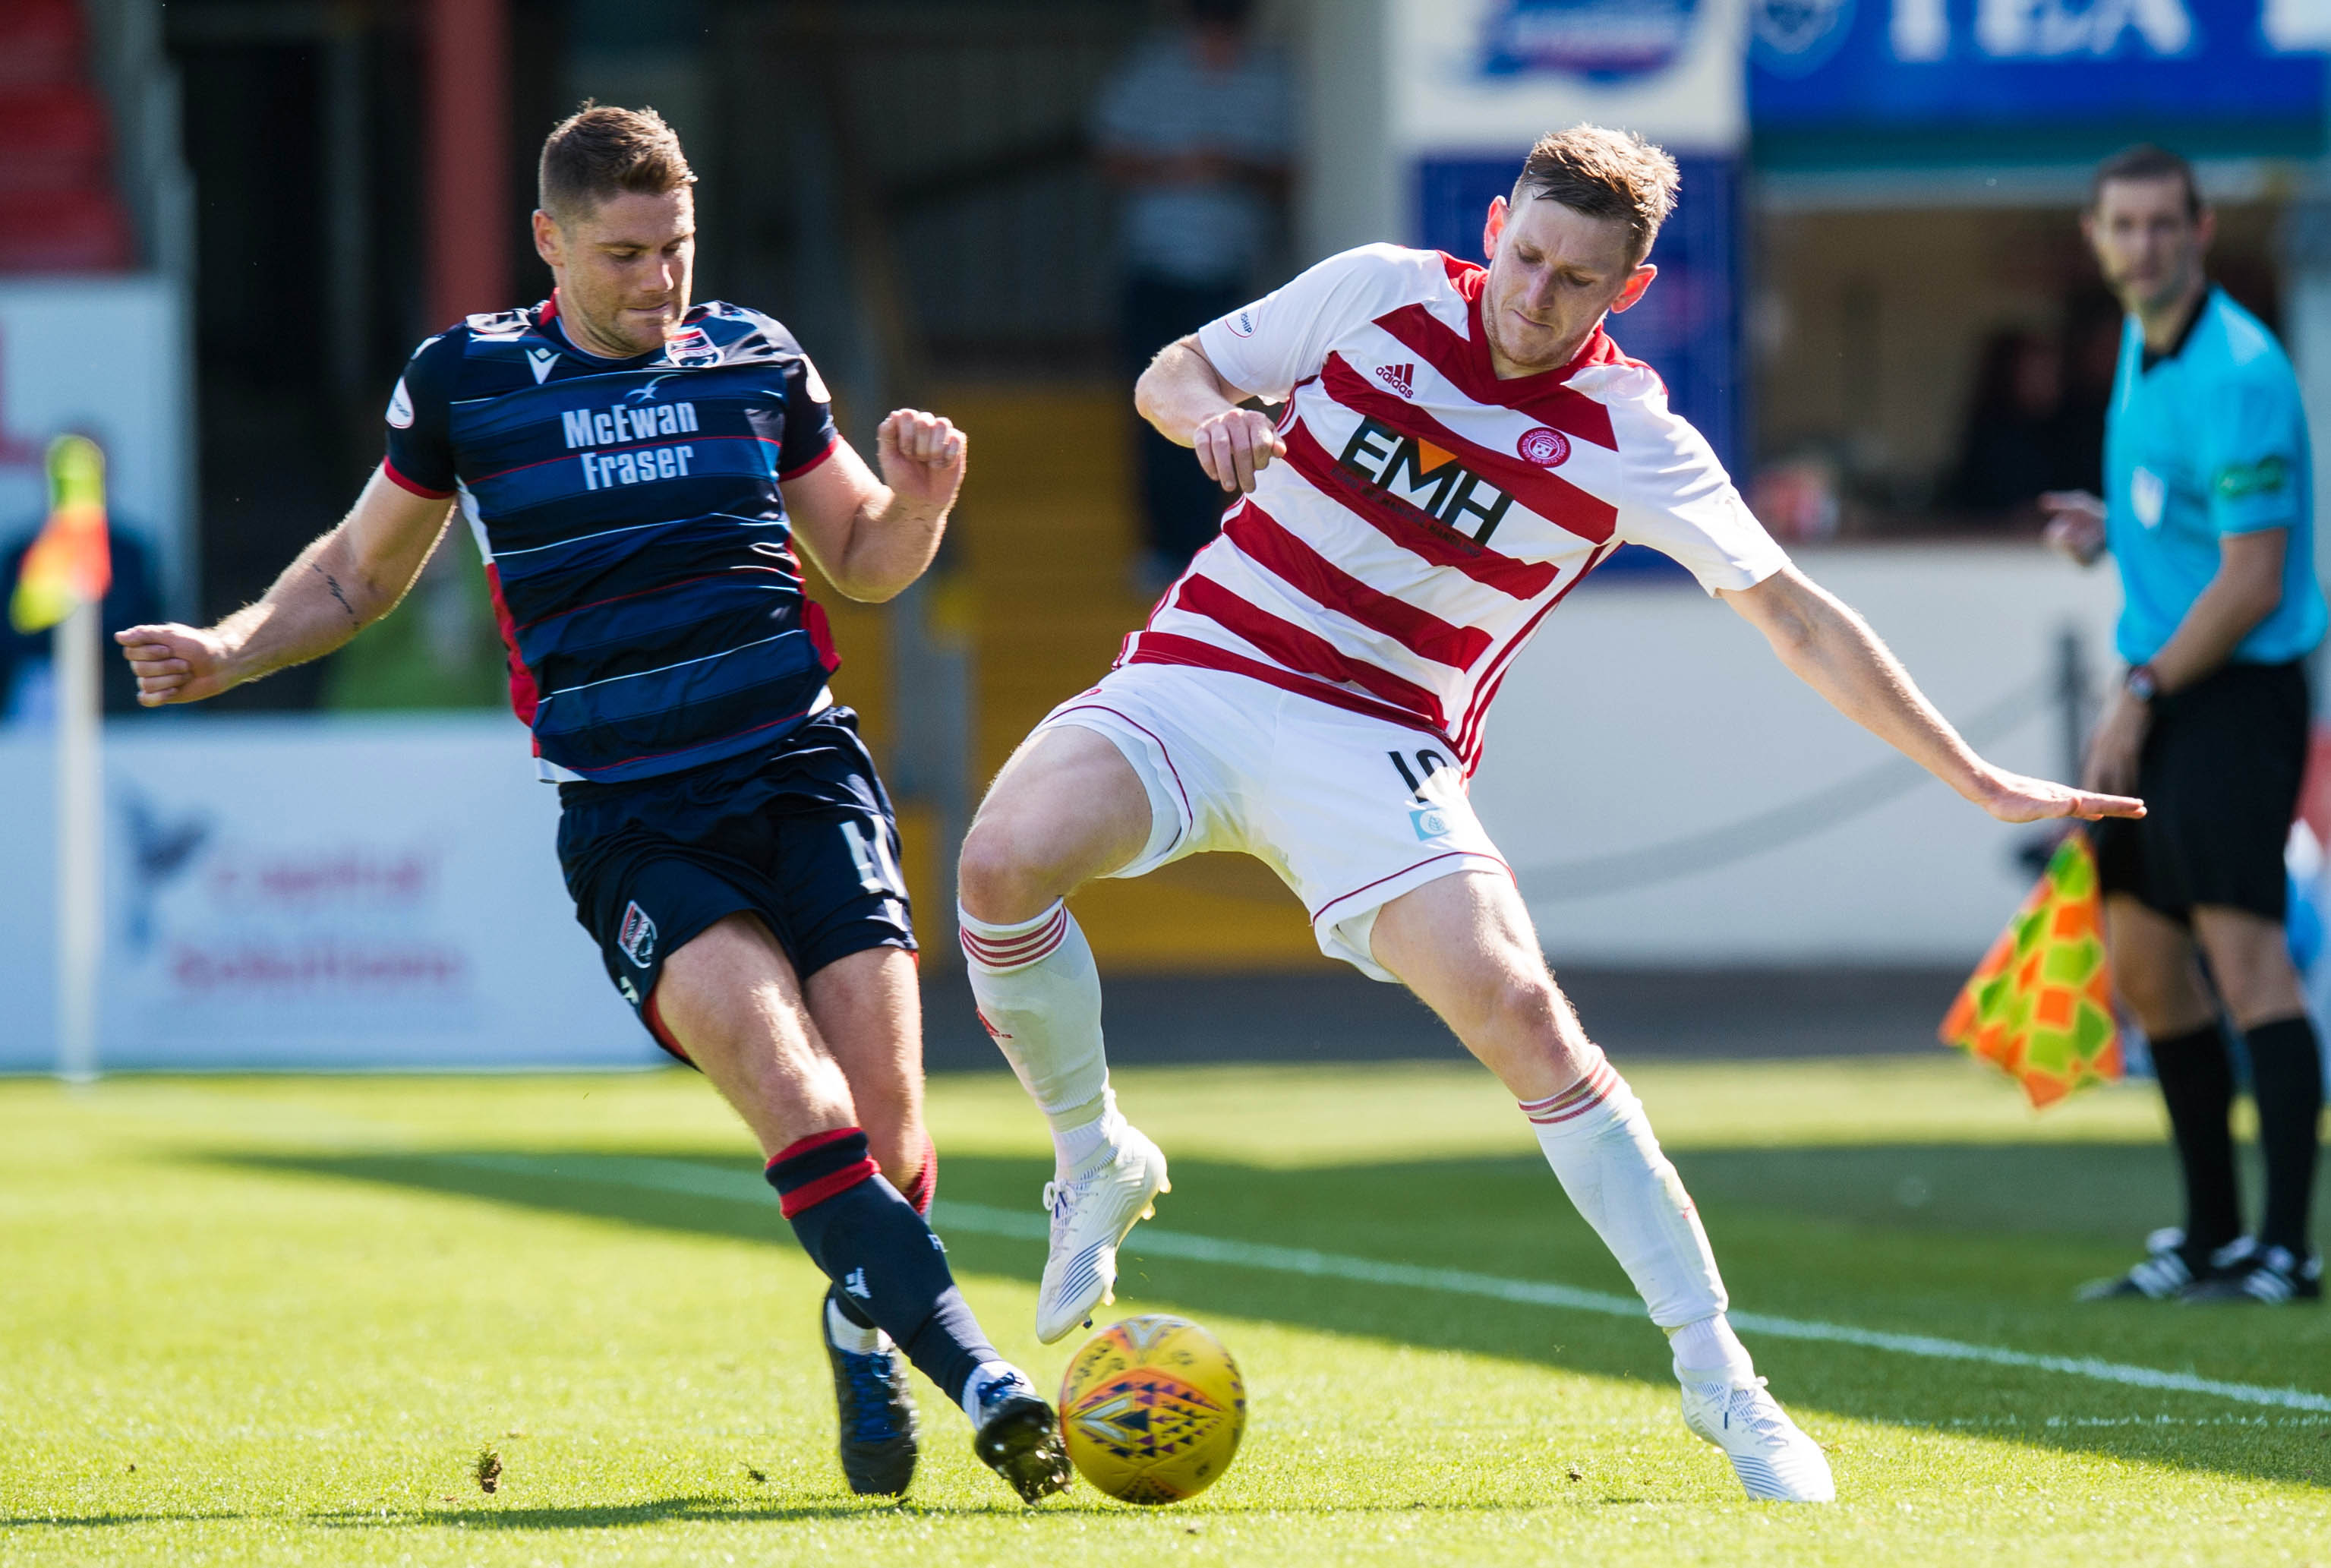 03/08/19 LADBROKES PREMIERSHIP ROSS COUNTY v HAMILTON ACADEMICAL (3-0) GLOBAL ENERGY STADIUM - DINGWALL Hamilton's Blair Alston (R) contests with Ross County's Iain Vigurs